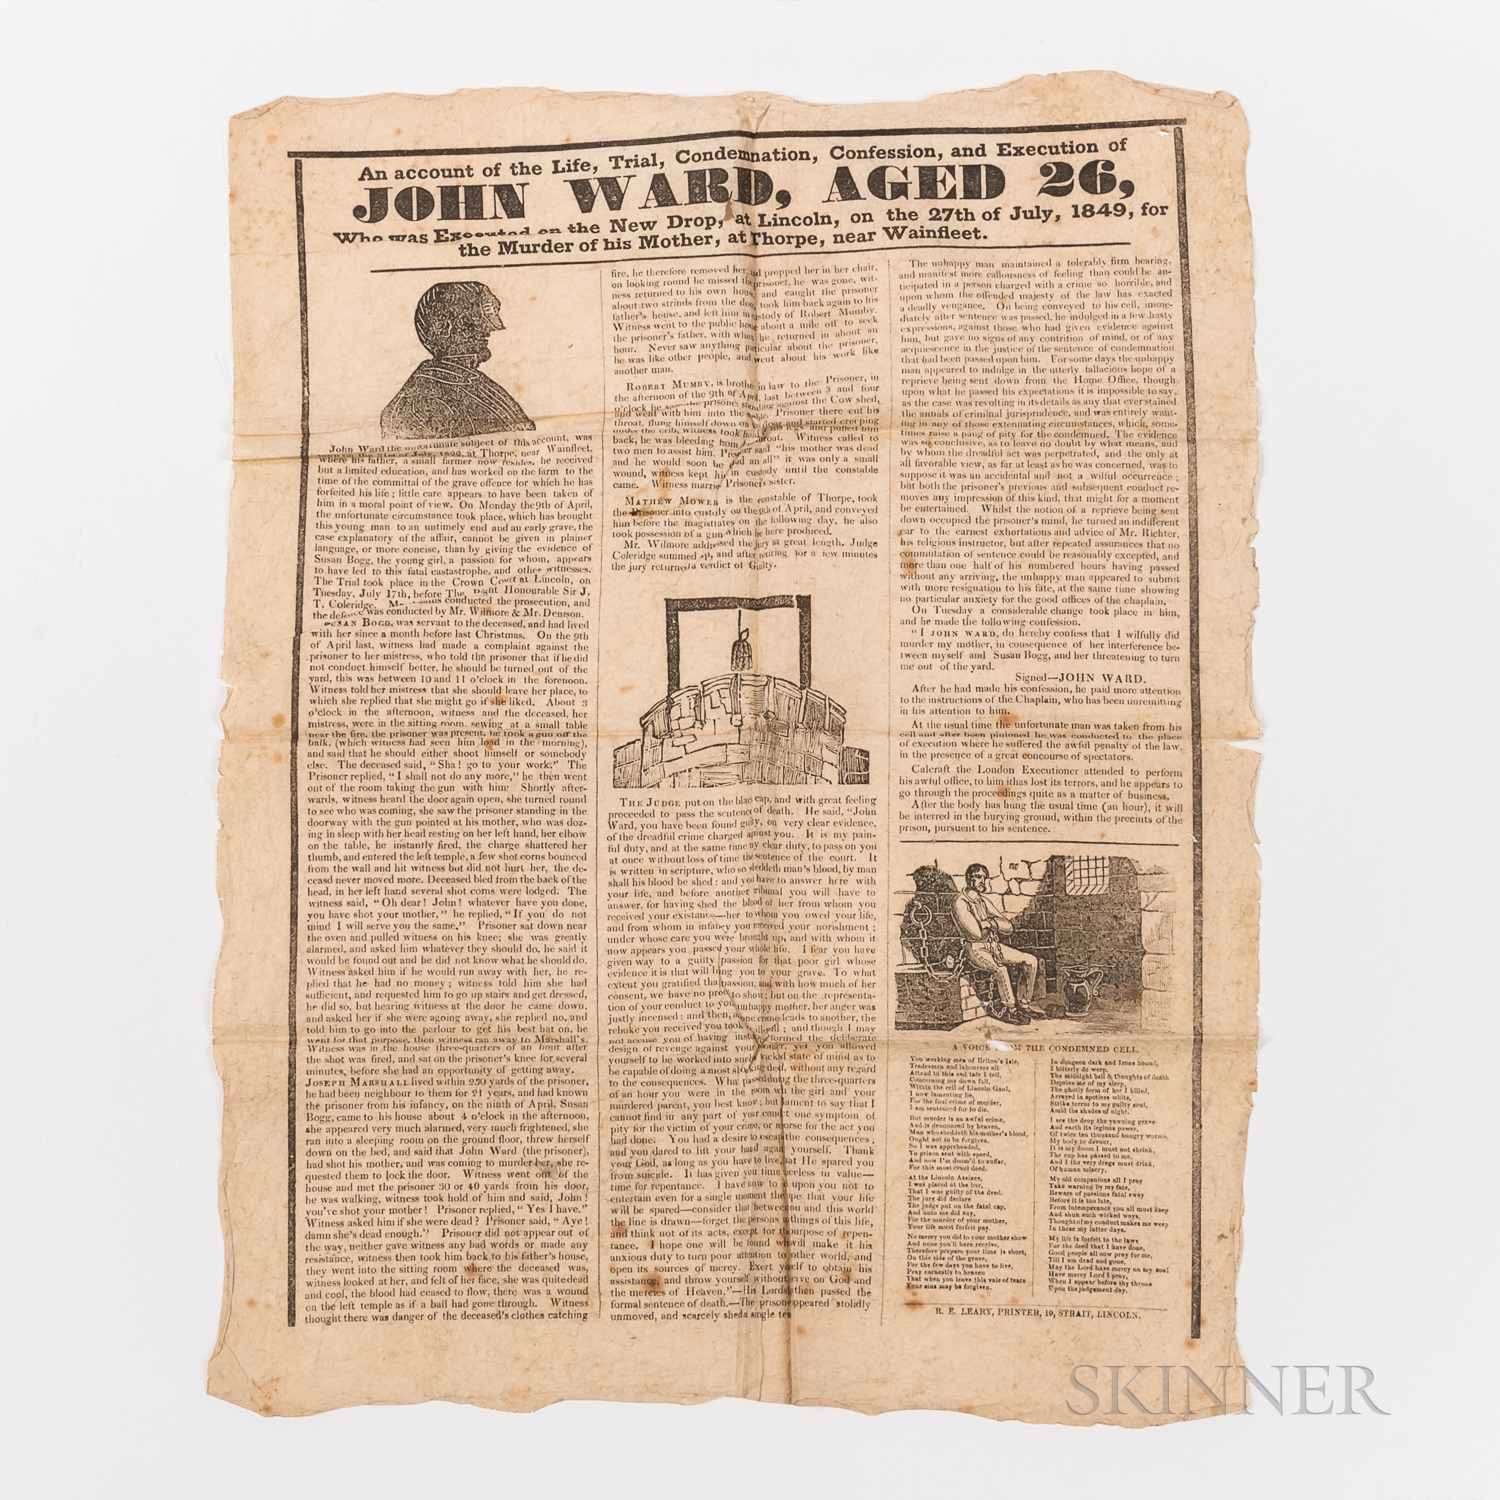 Printed Broadside, An Account of the Life, Trial, Condemnation, Confession, and Execution of John Ward, Aged 26, Who was Executed on th